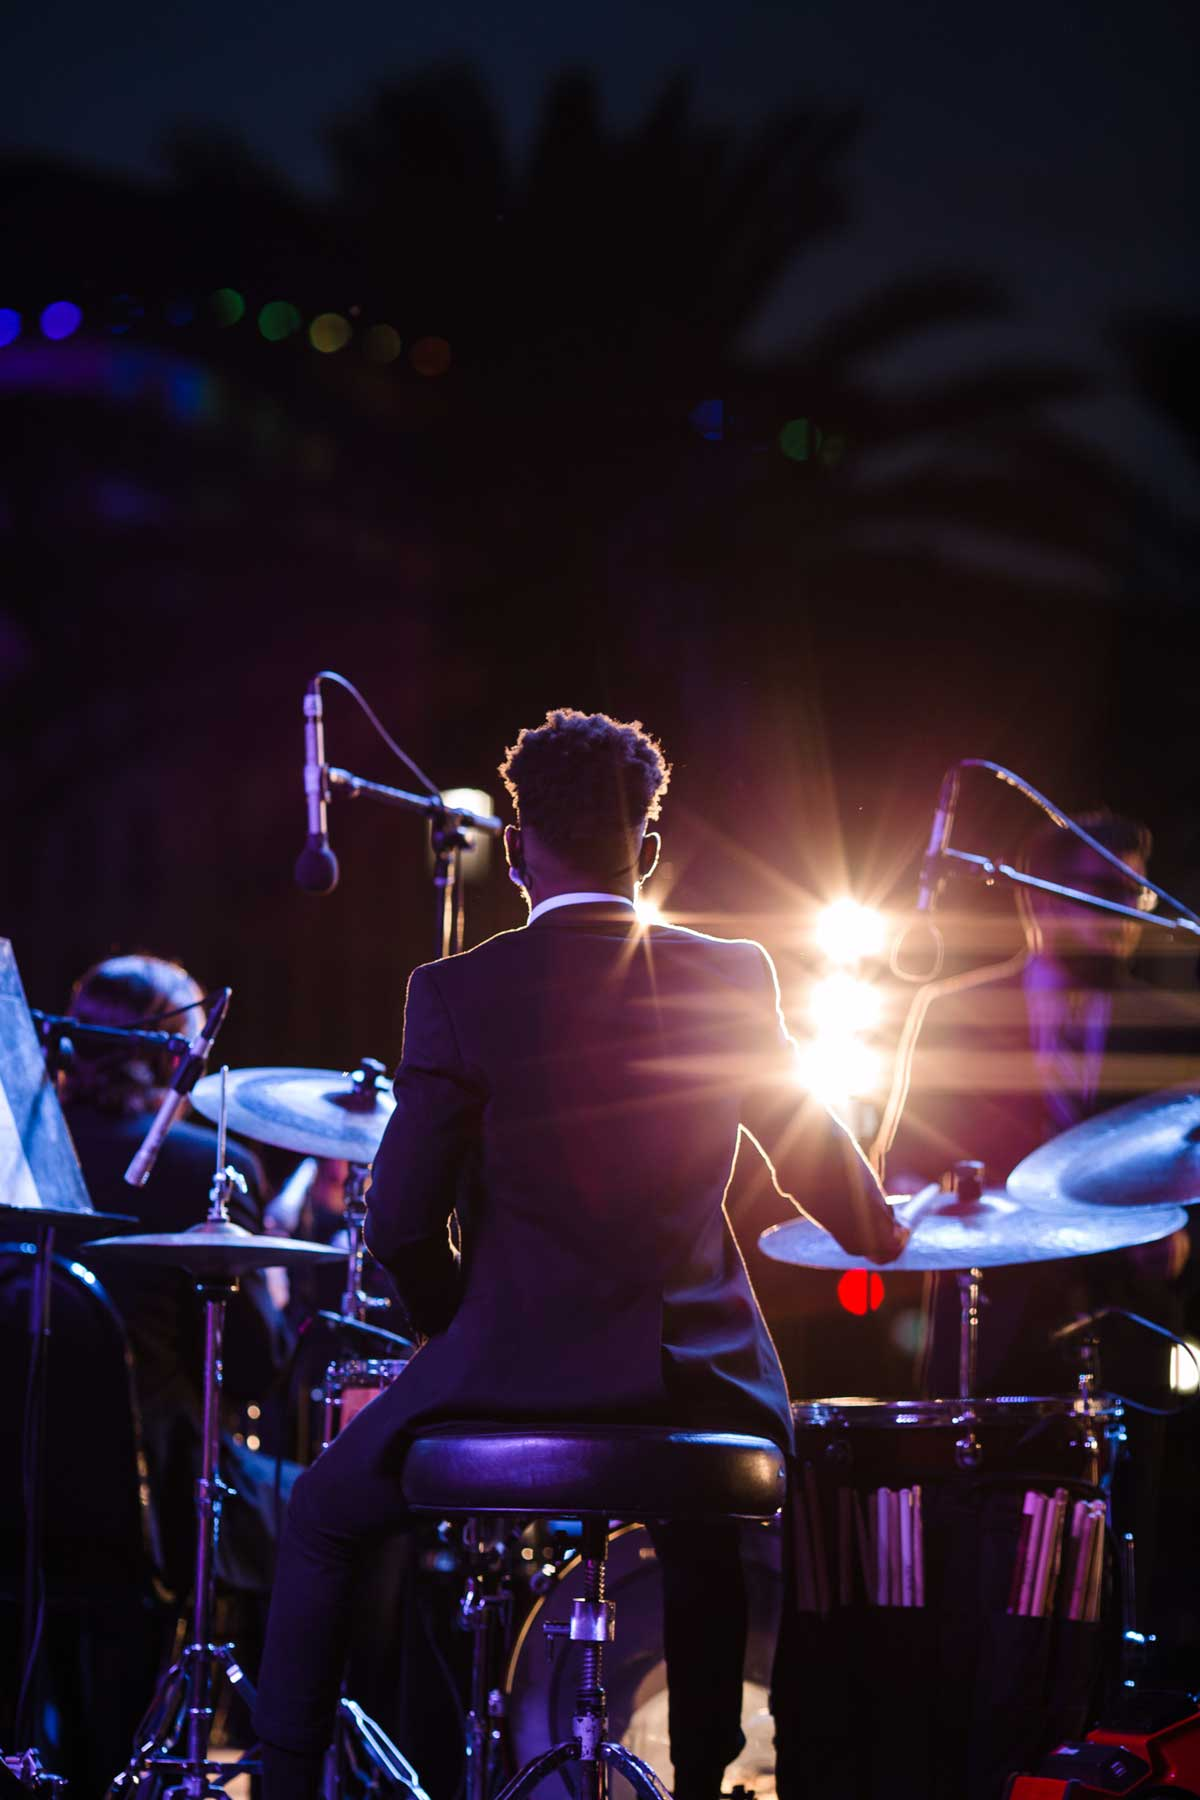 Photo of student seated at drums on stage at night, view from behind